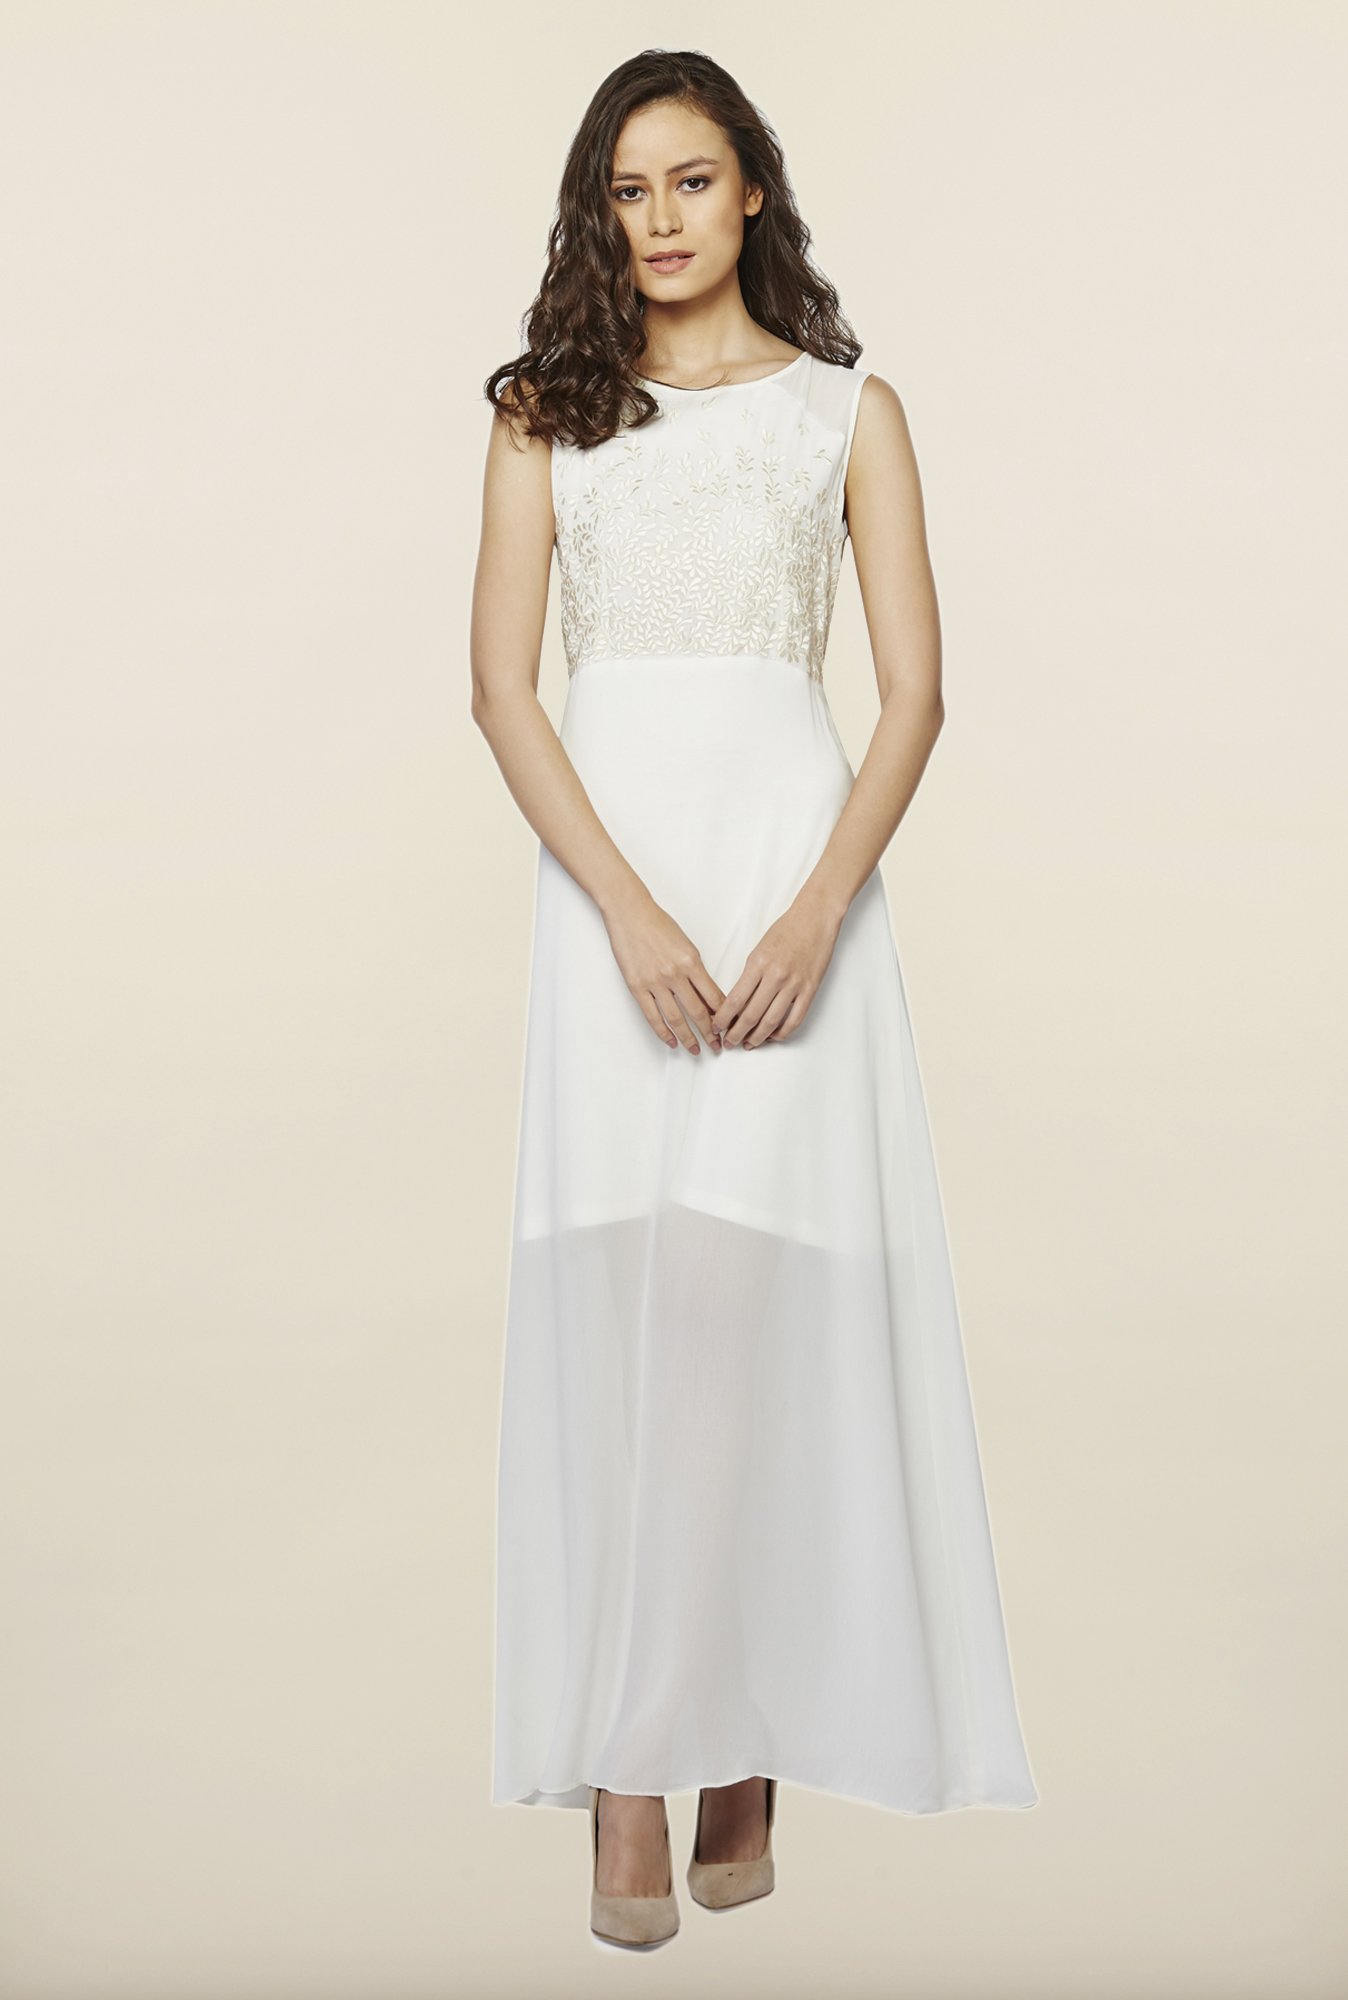 AND White Embroidered Casual Dress